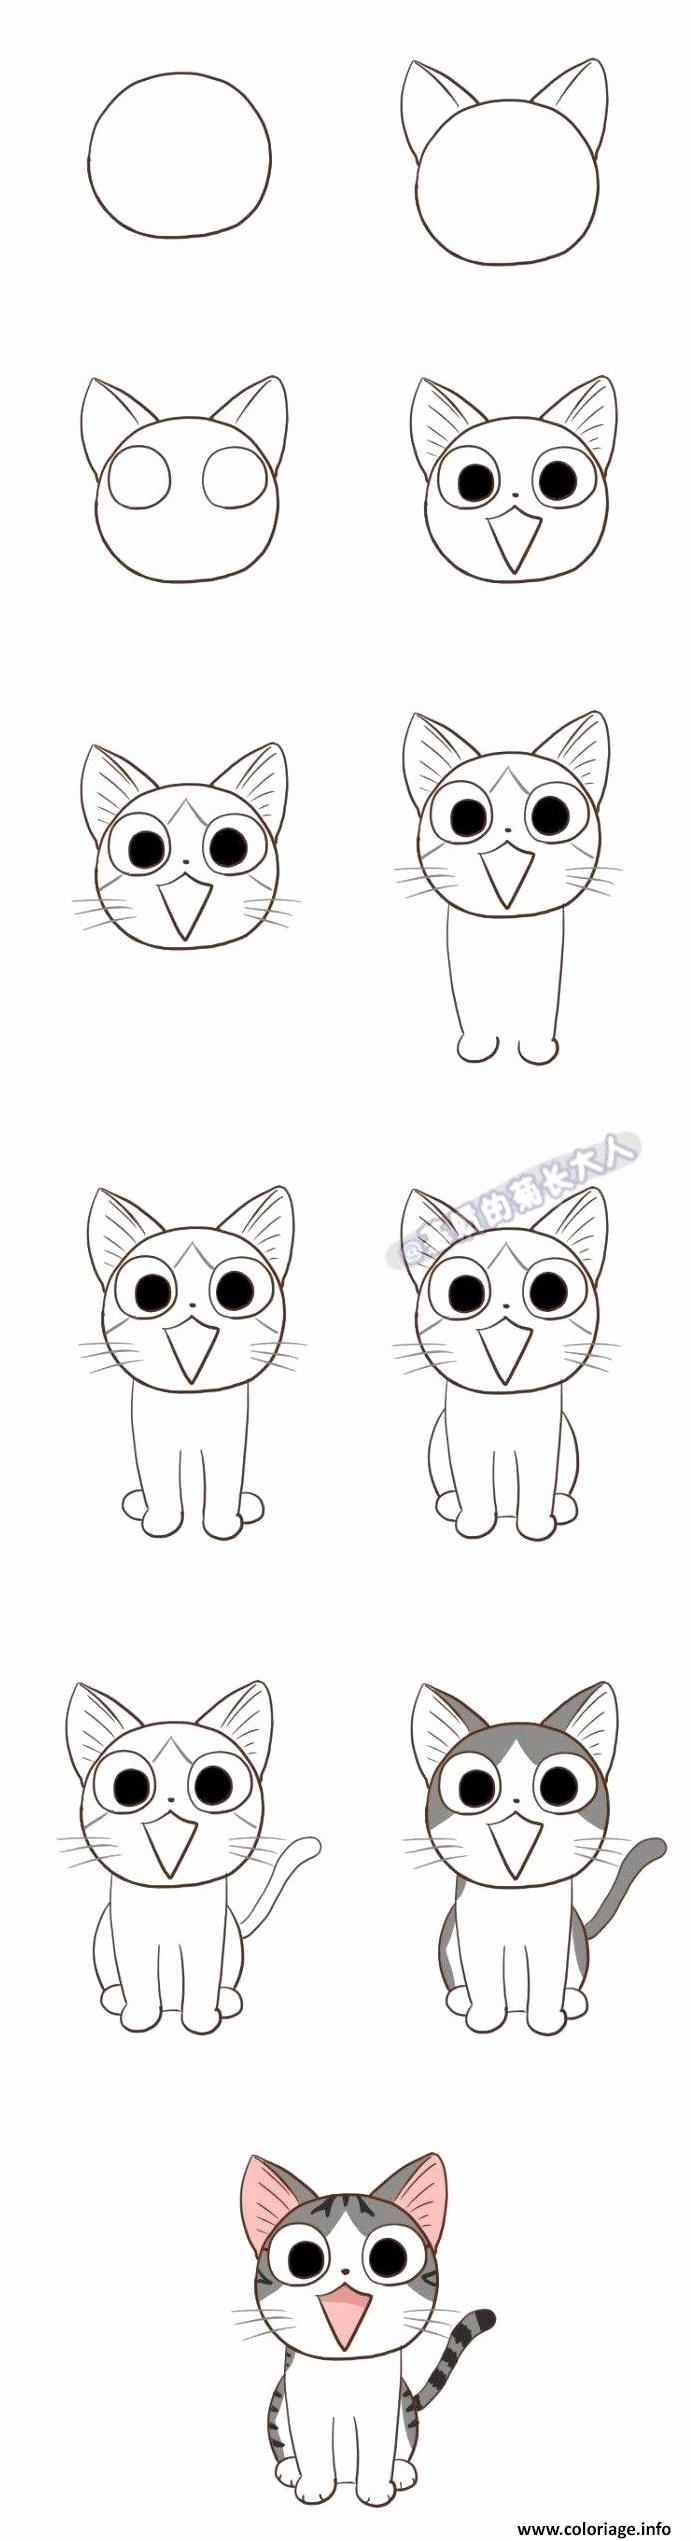 Coloriage Comment Dessiner Un Chat Kawaii Dessin